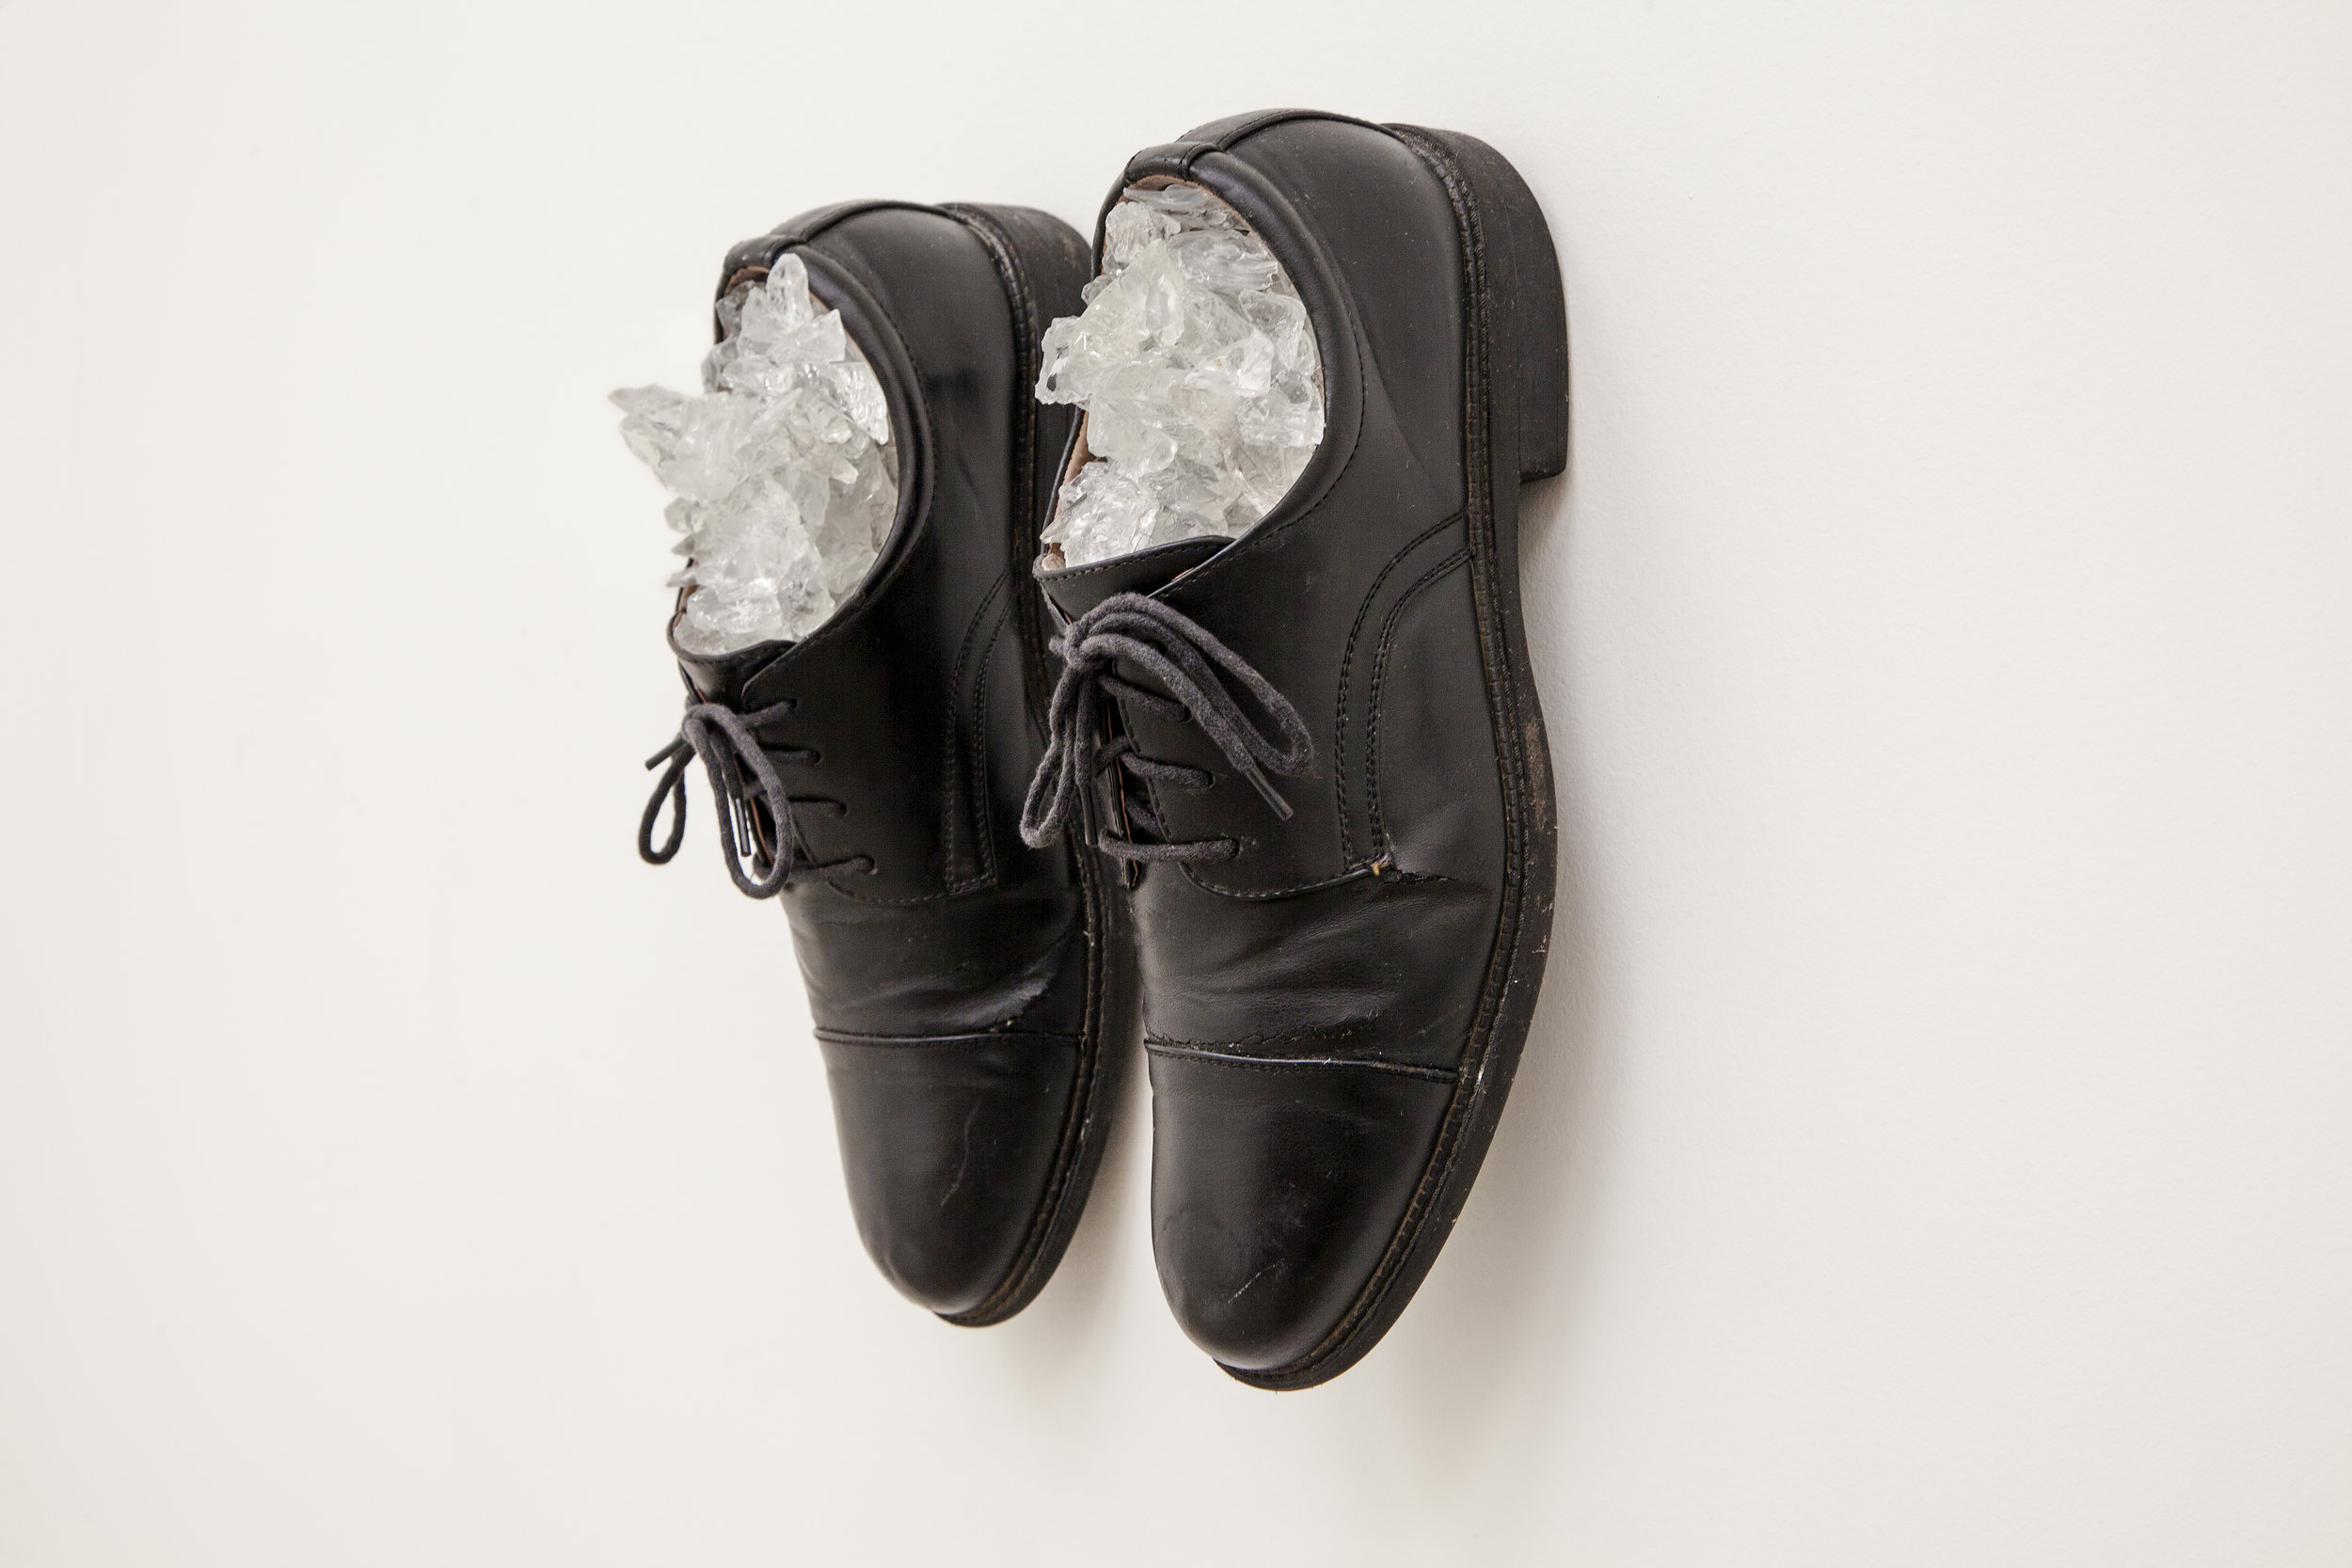 For Monty For Python , 2015, Oxford Shoes, Broken glass, 11 x 9 x 4 in